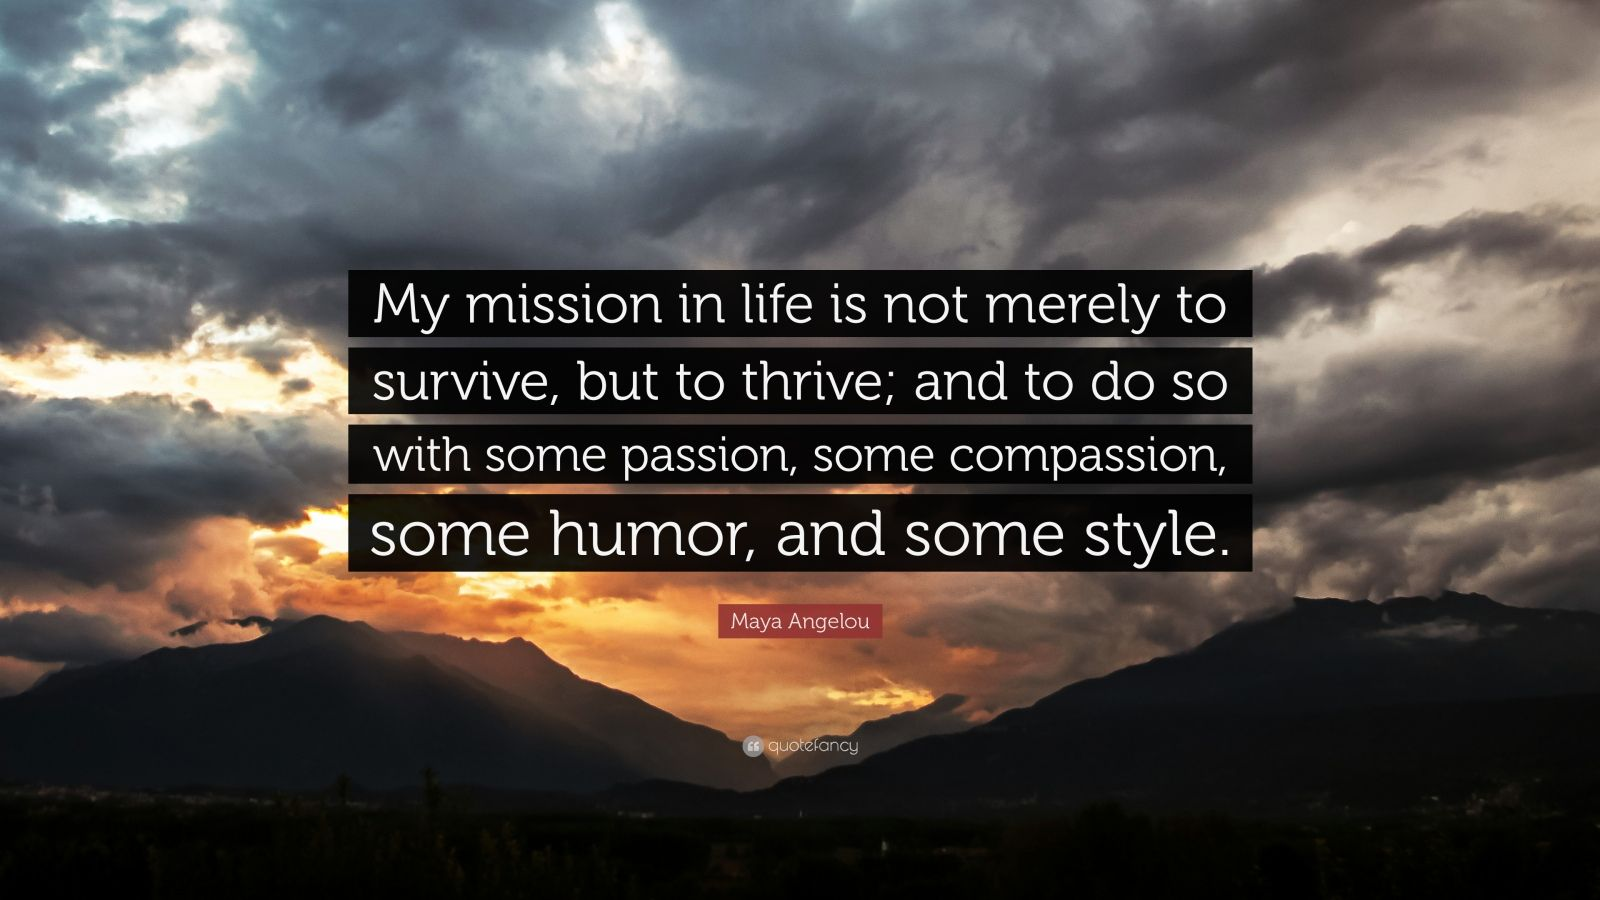 "Inspiring Quotes: ""My mission in life is not merely to survive, but to thrive; and to do so with some passion, some compassion, some humor, and some style."" — Maya Angelou"